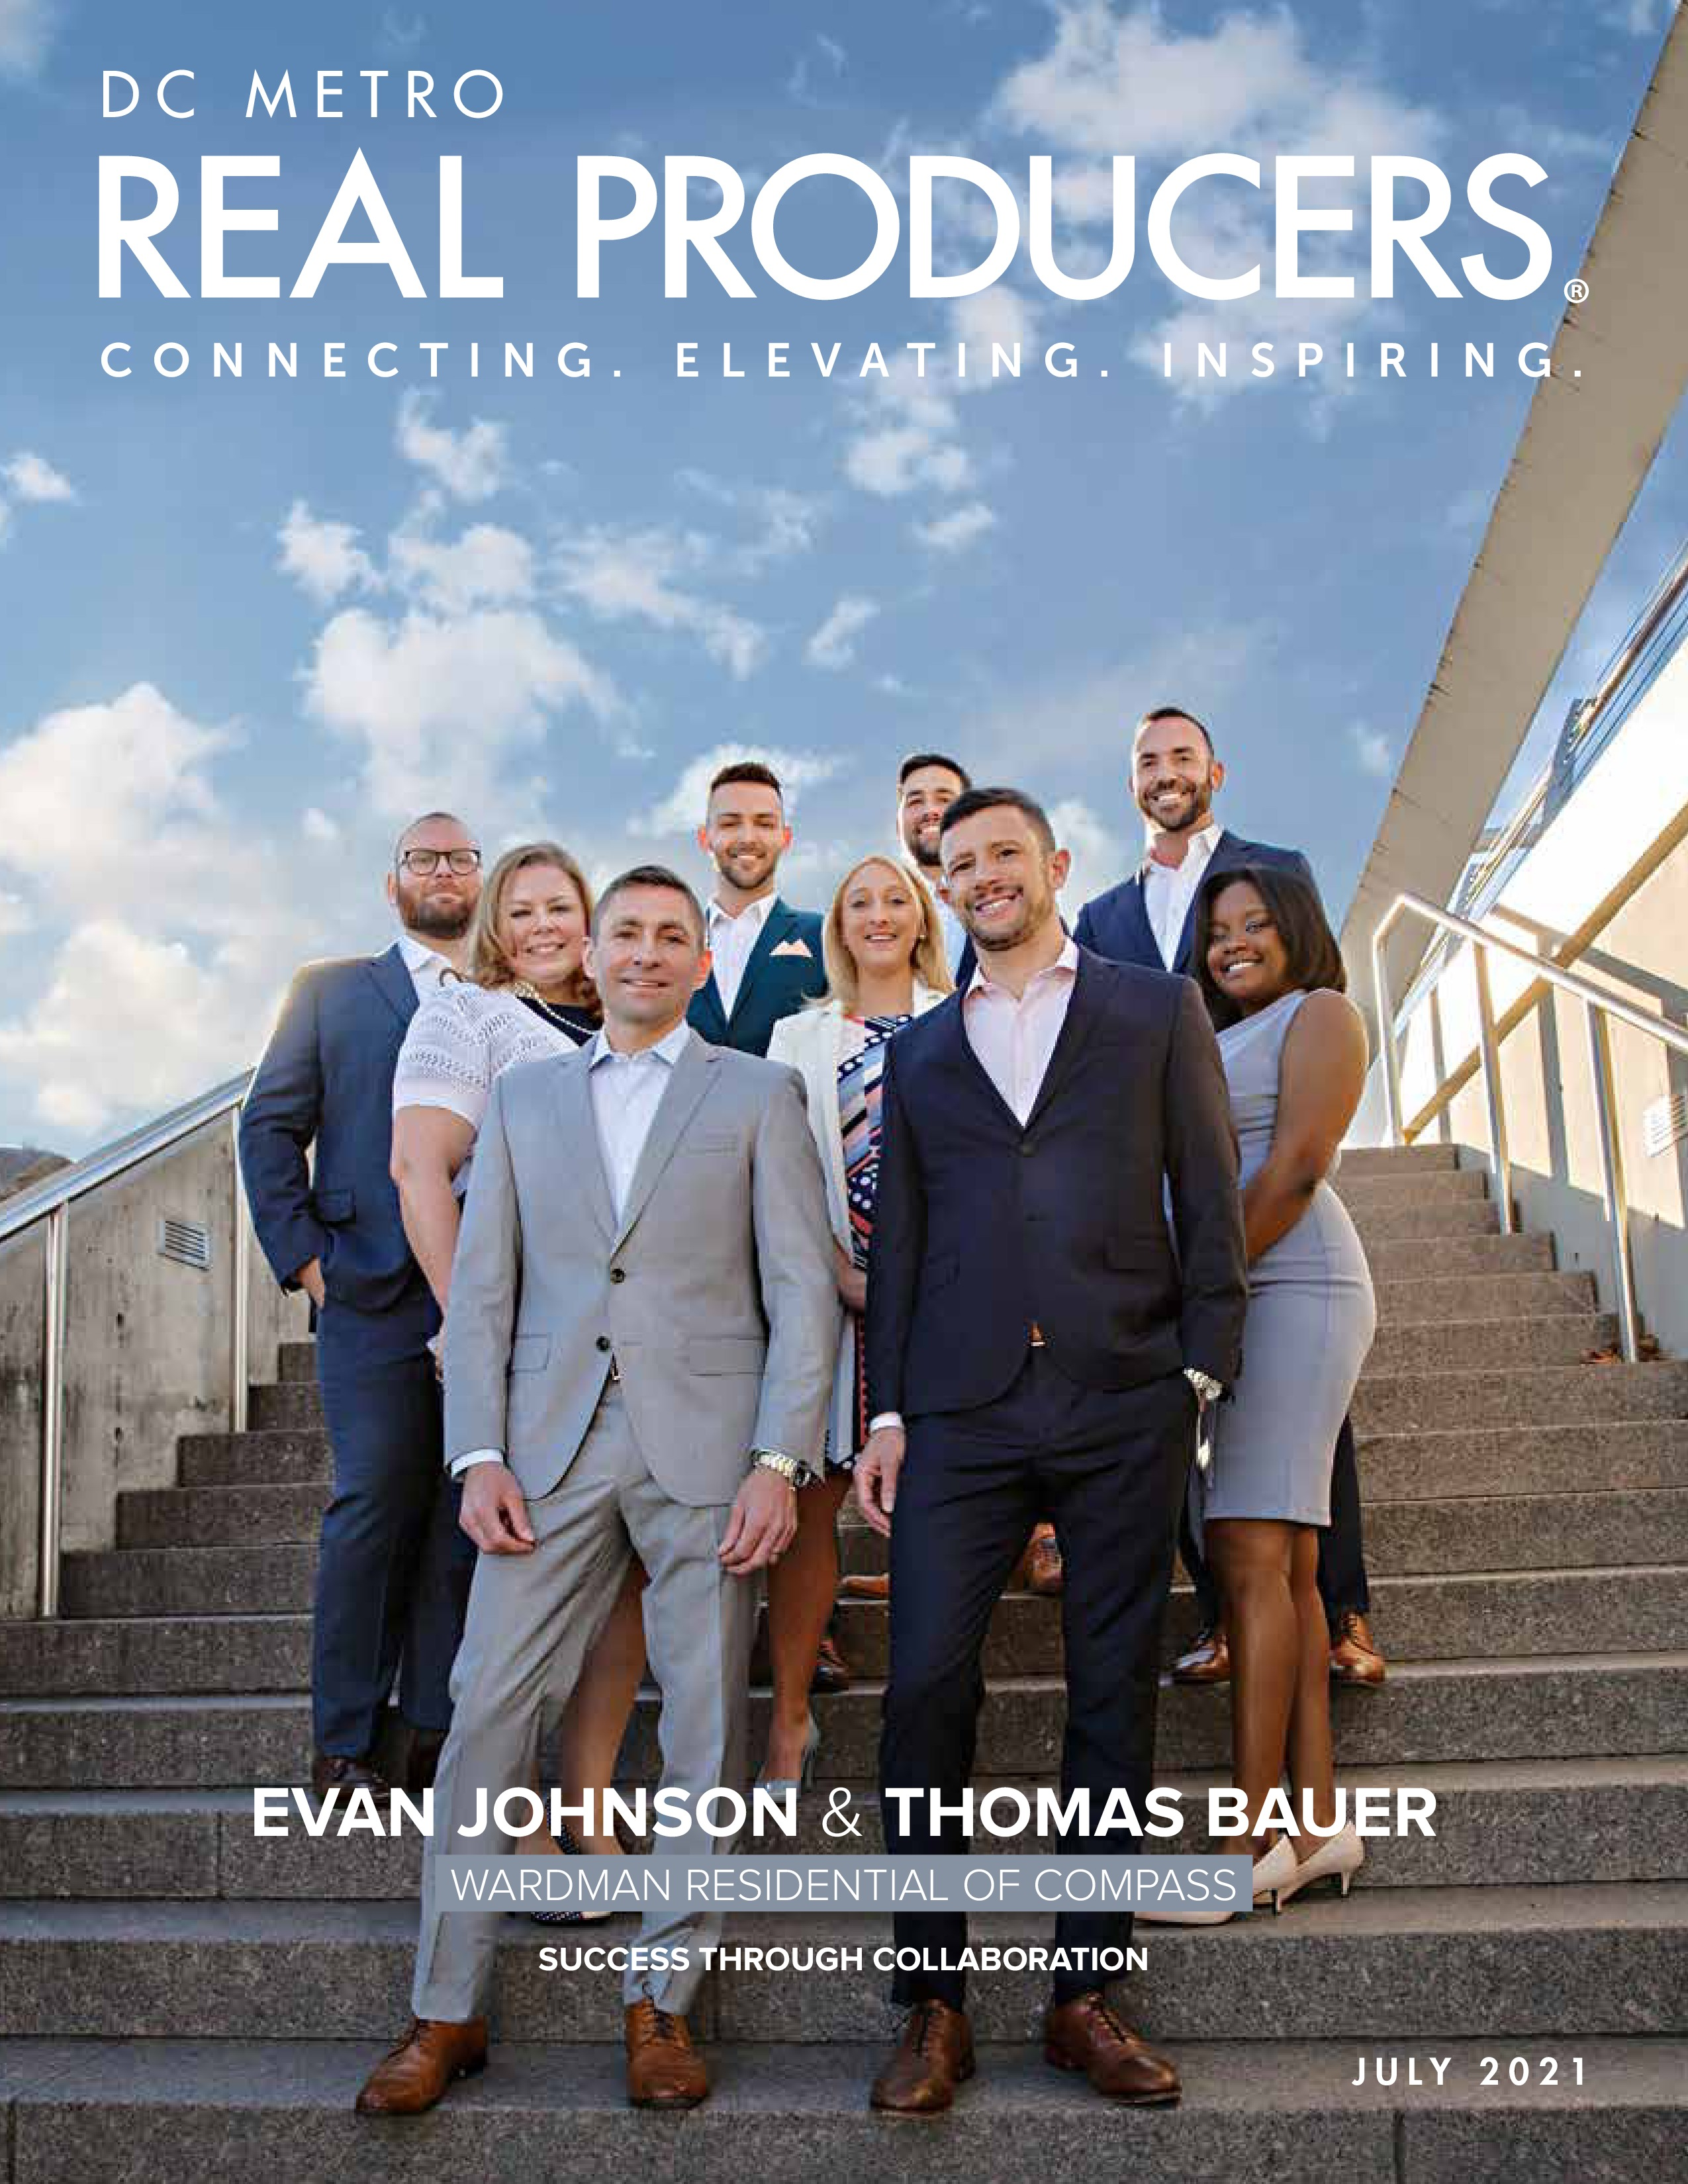 DC Metro Real Producers 2021-07-01